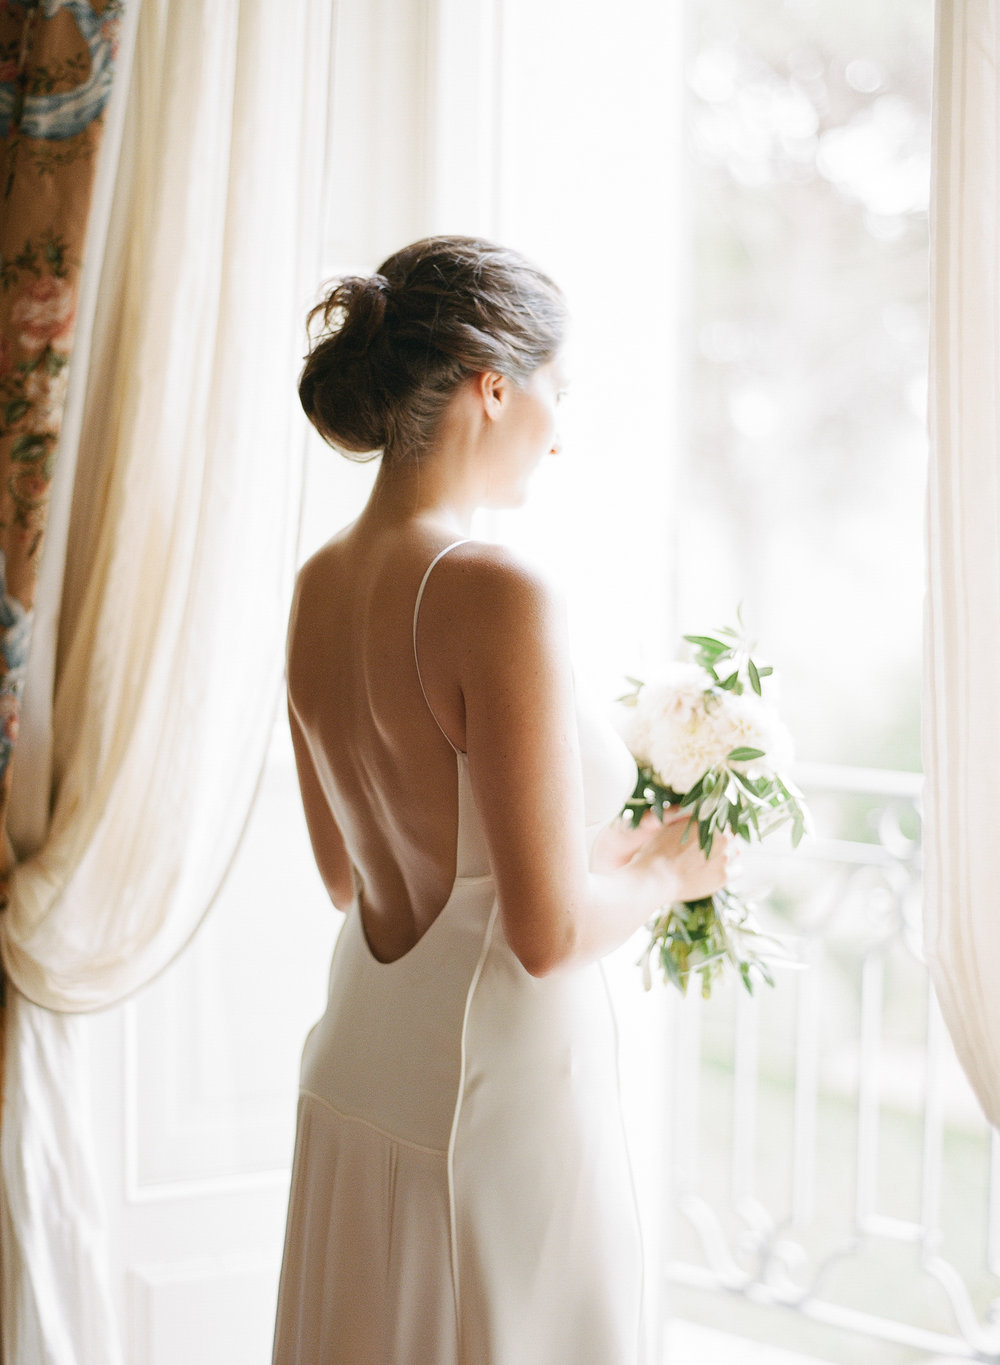 A bride holds her bouquet at the window of a chateau in Provence, France; Sylvie Gil Photography